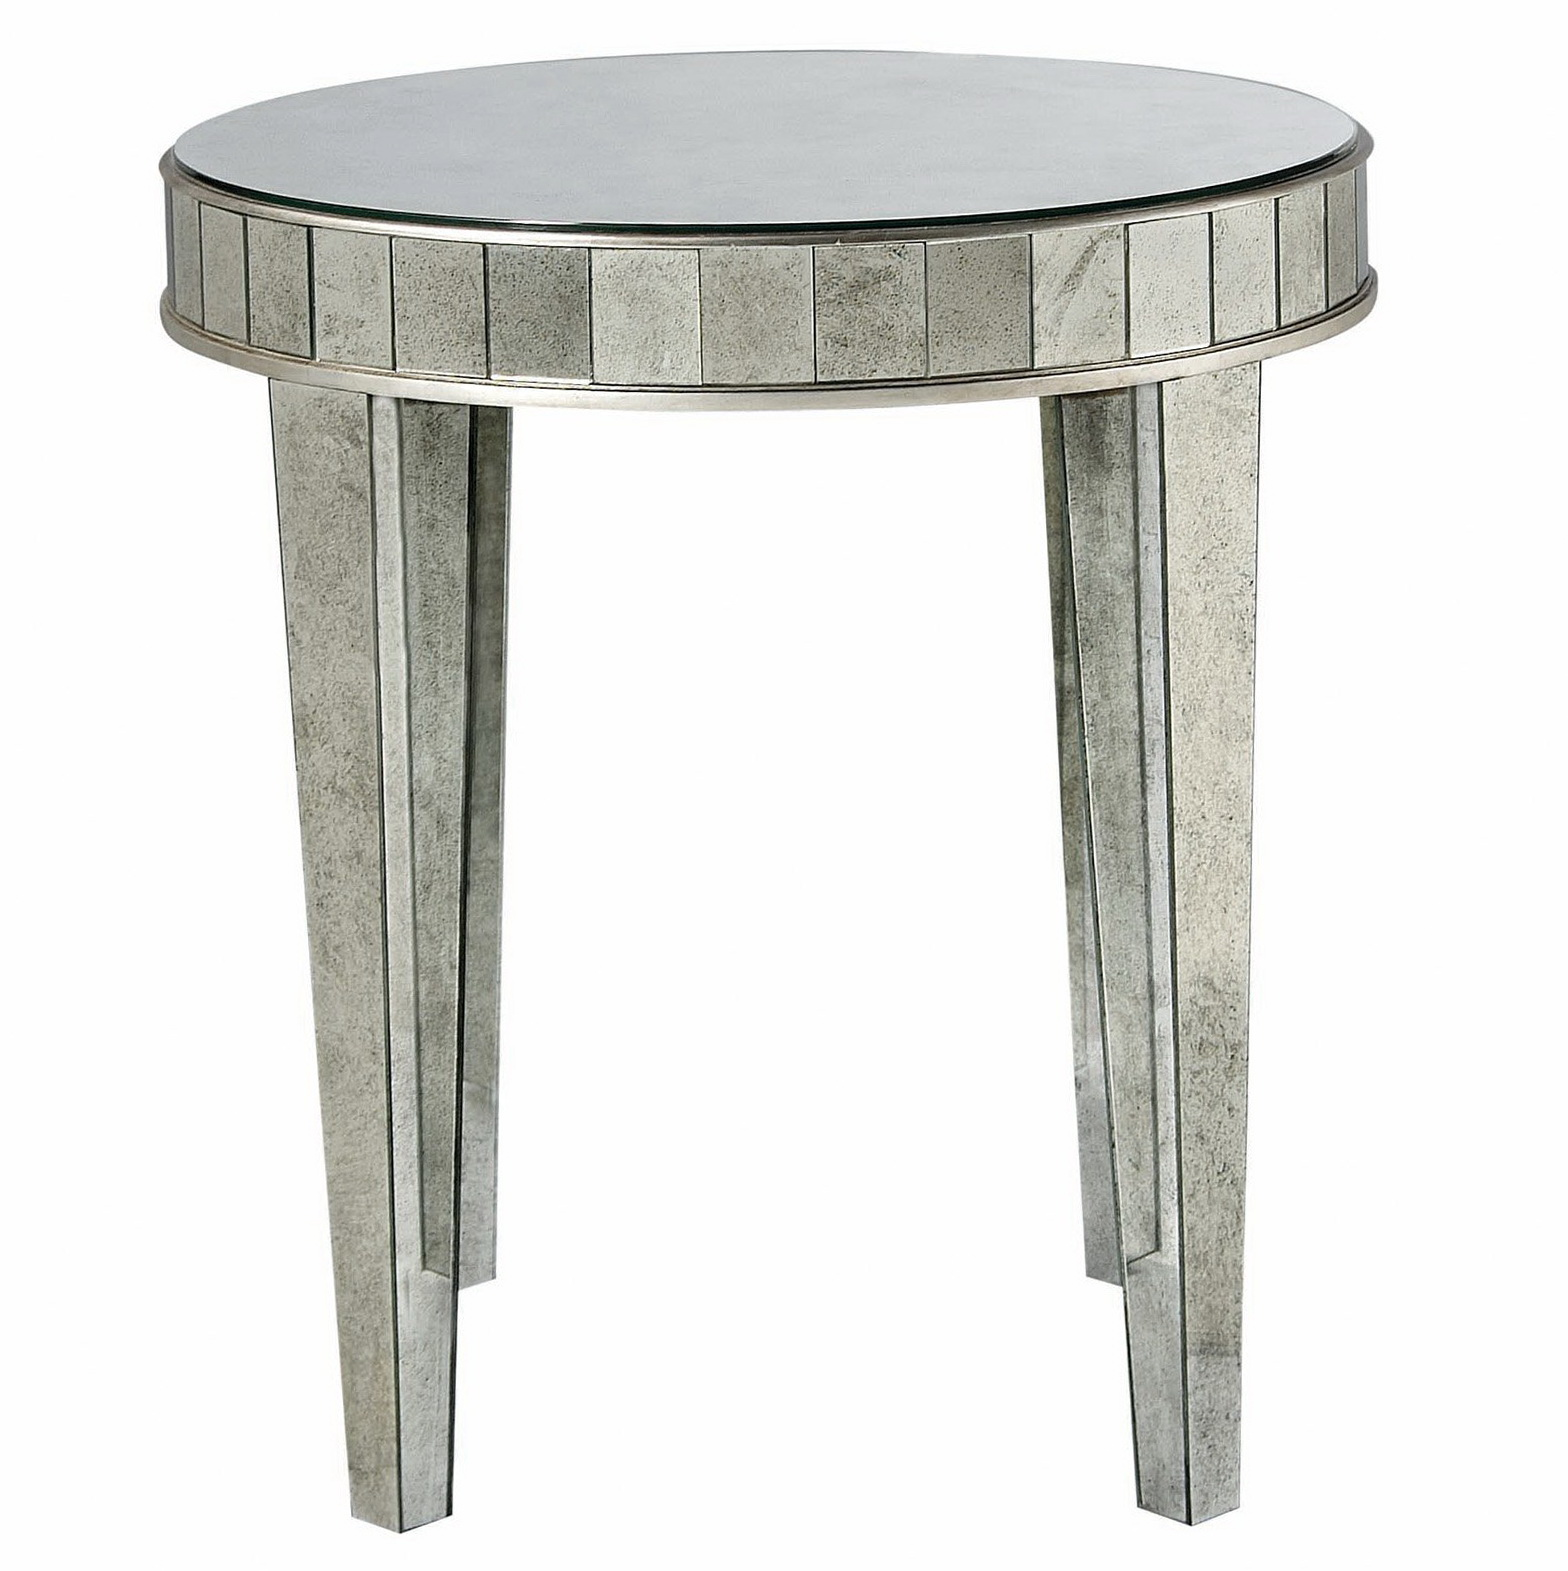 Round Mirror End Table